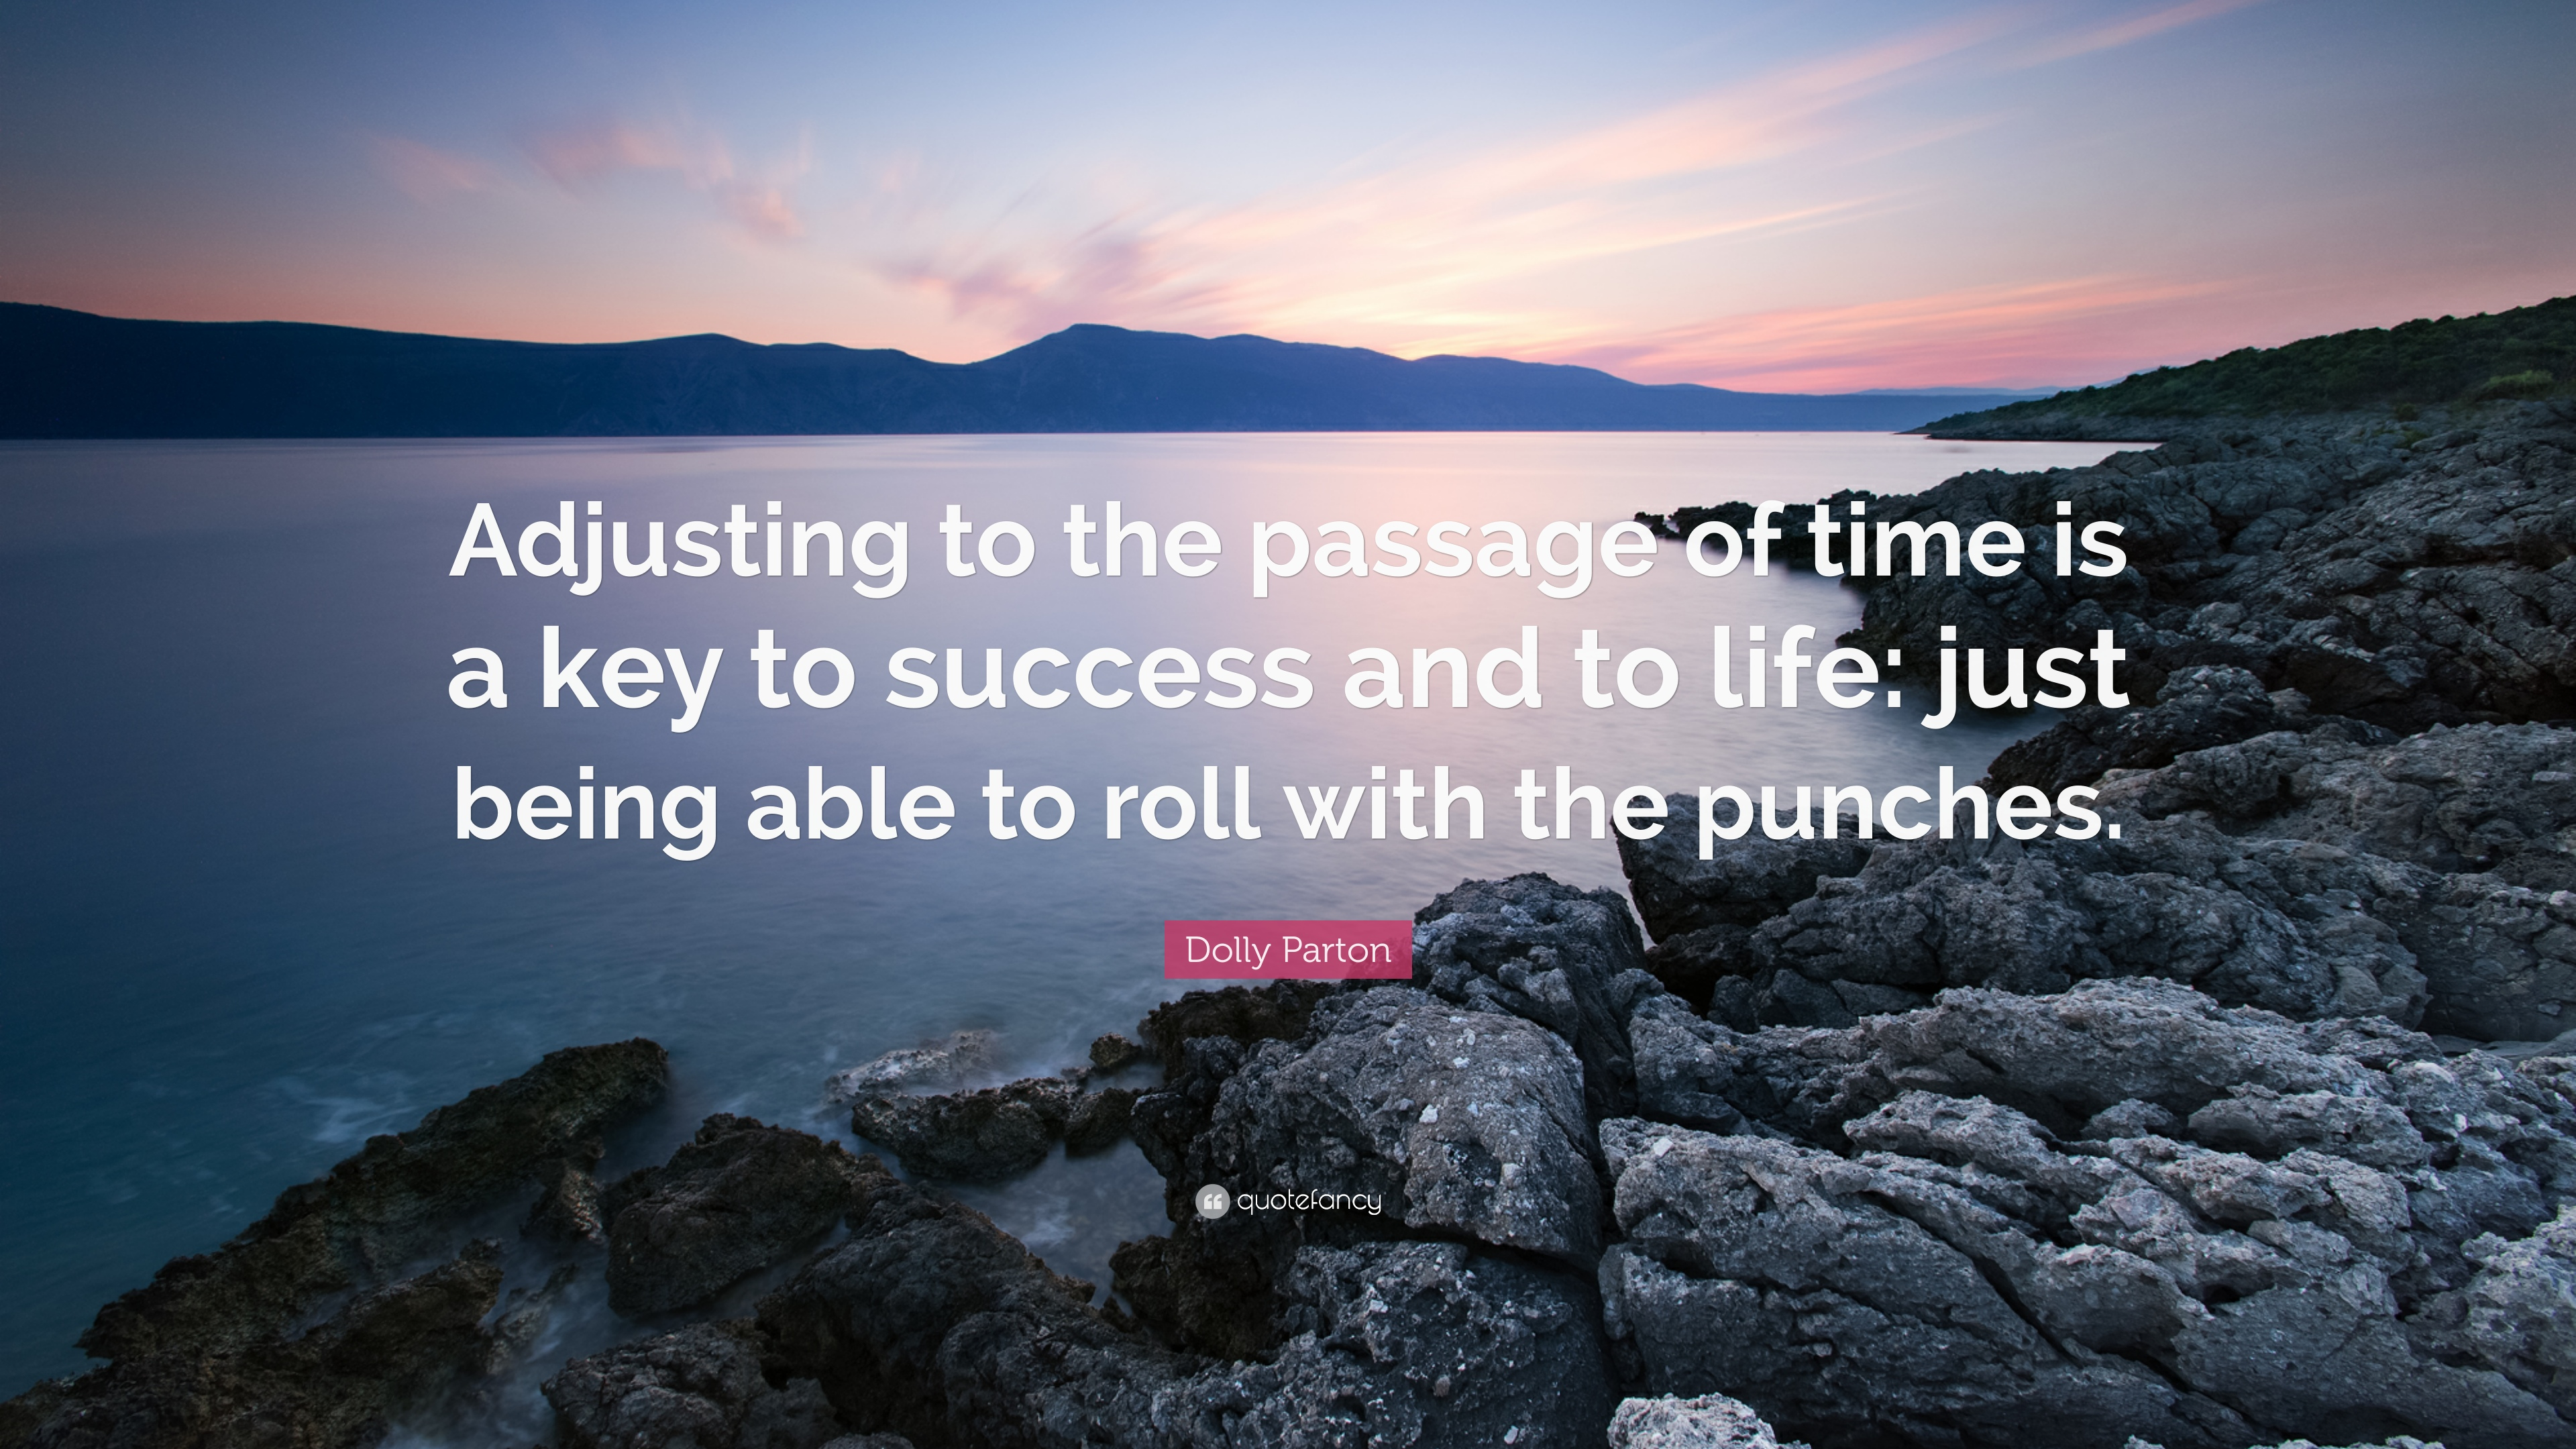 Dolly Parton Quote Adjusting To The Passage Of Time Is A Key To